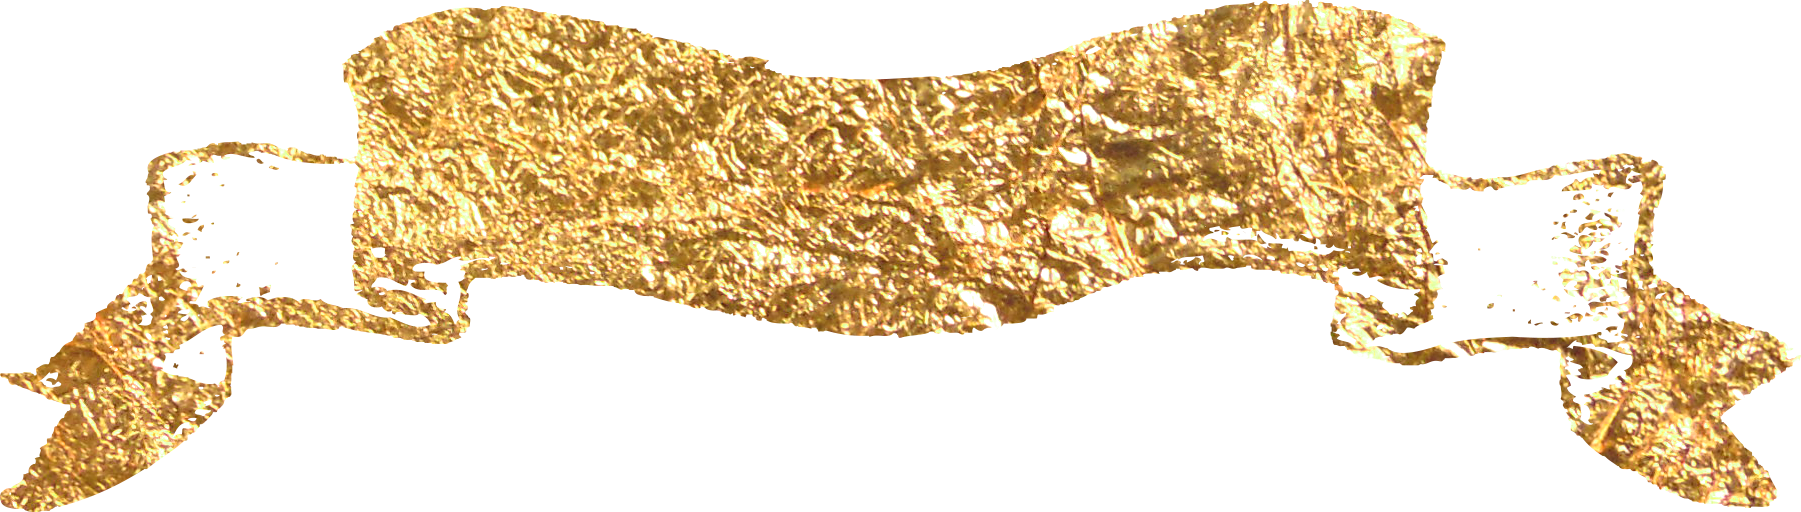 Gold glitter banner png. Material transprent free download